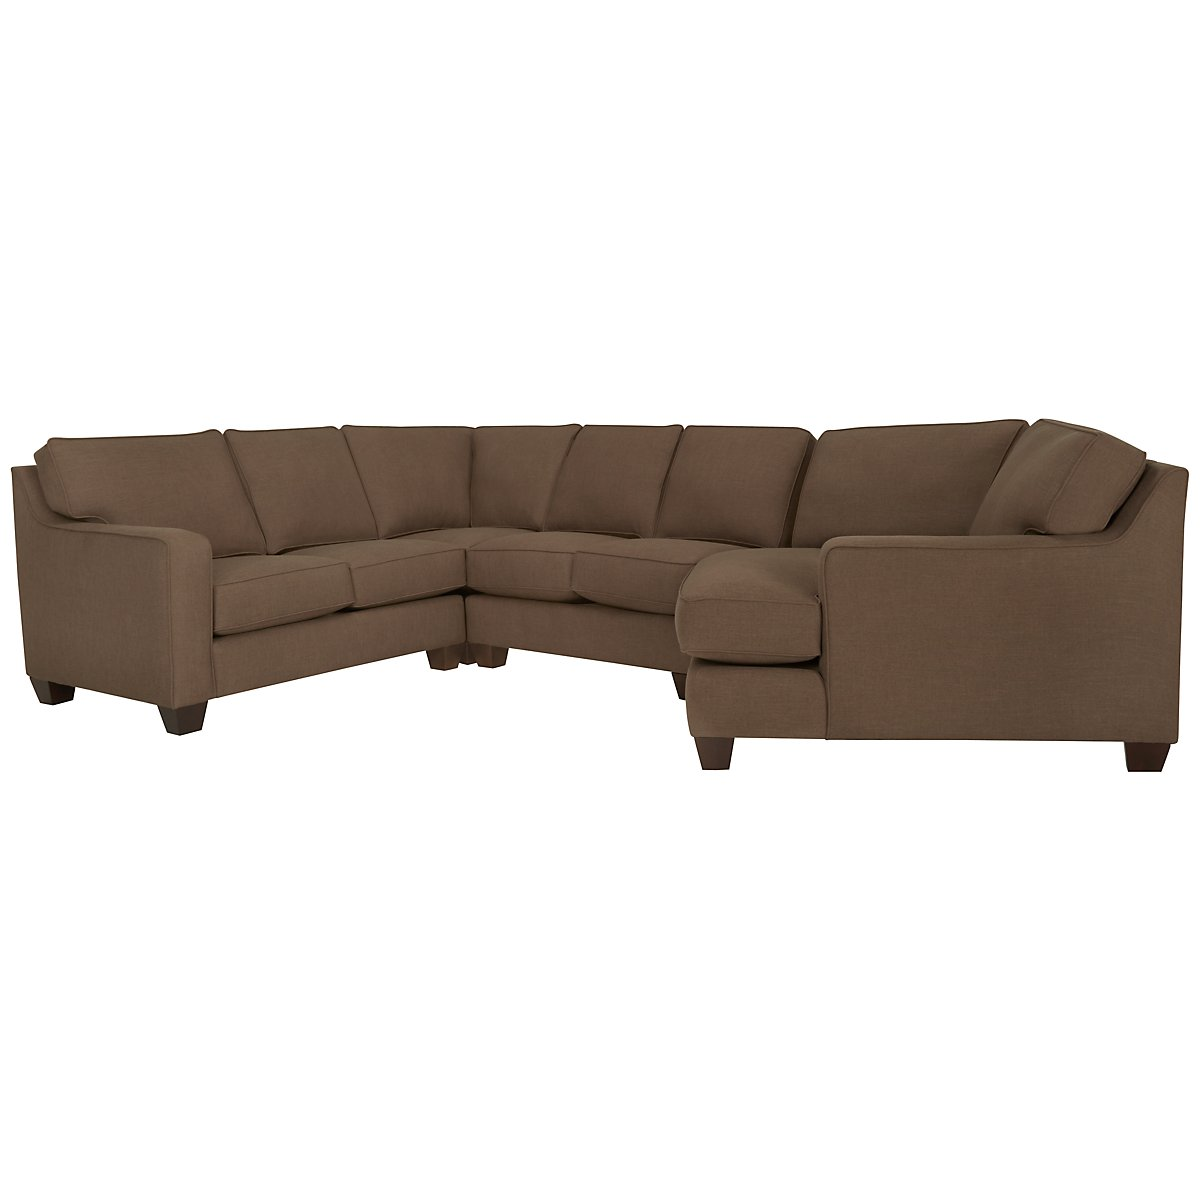 York Dark Brown Fabric Small Right Cuddler Sectional